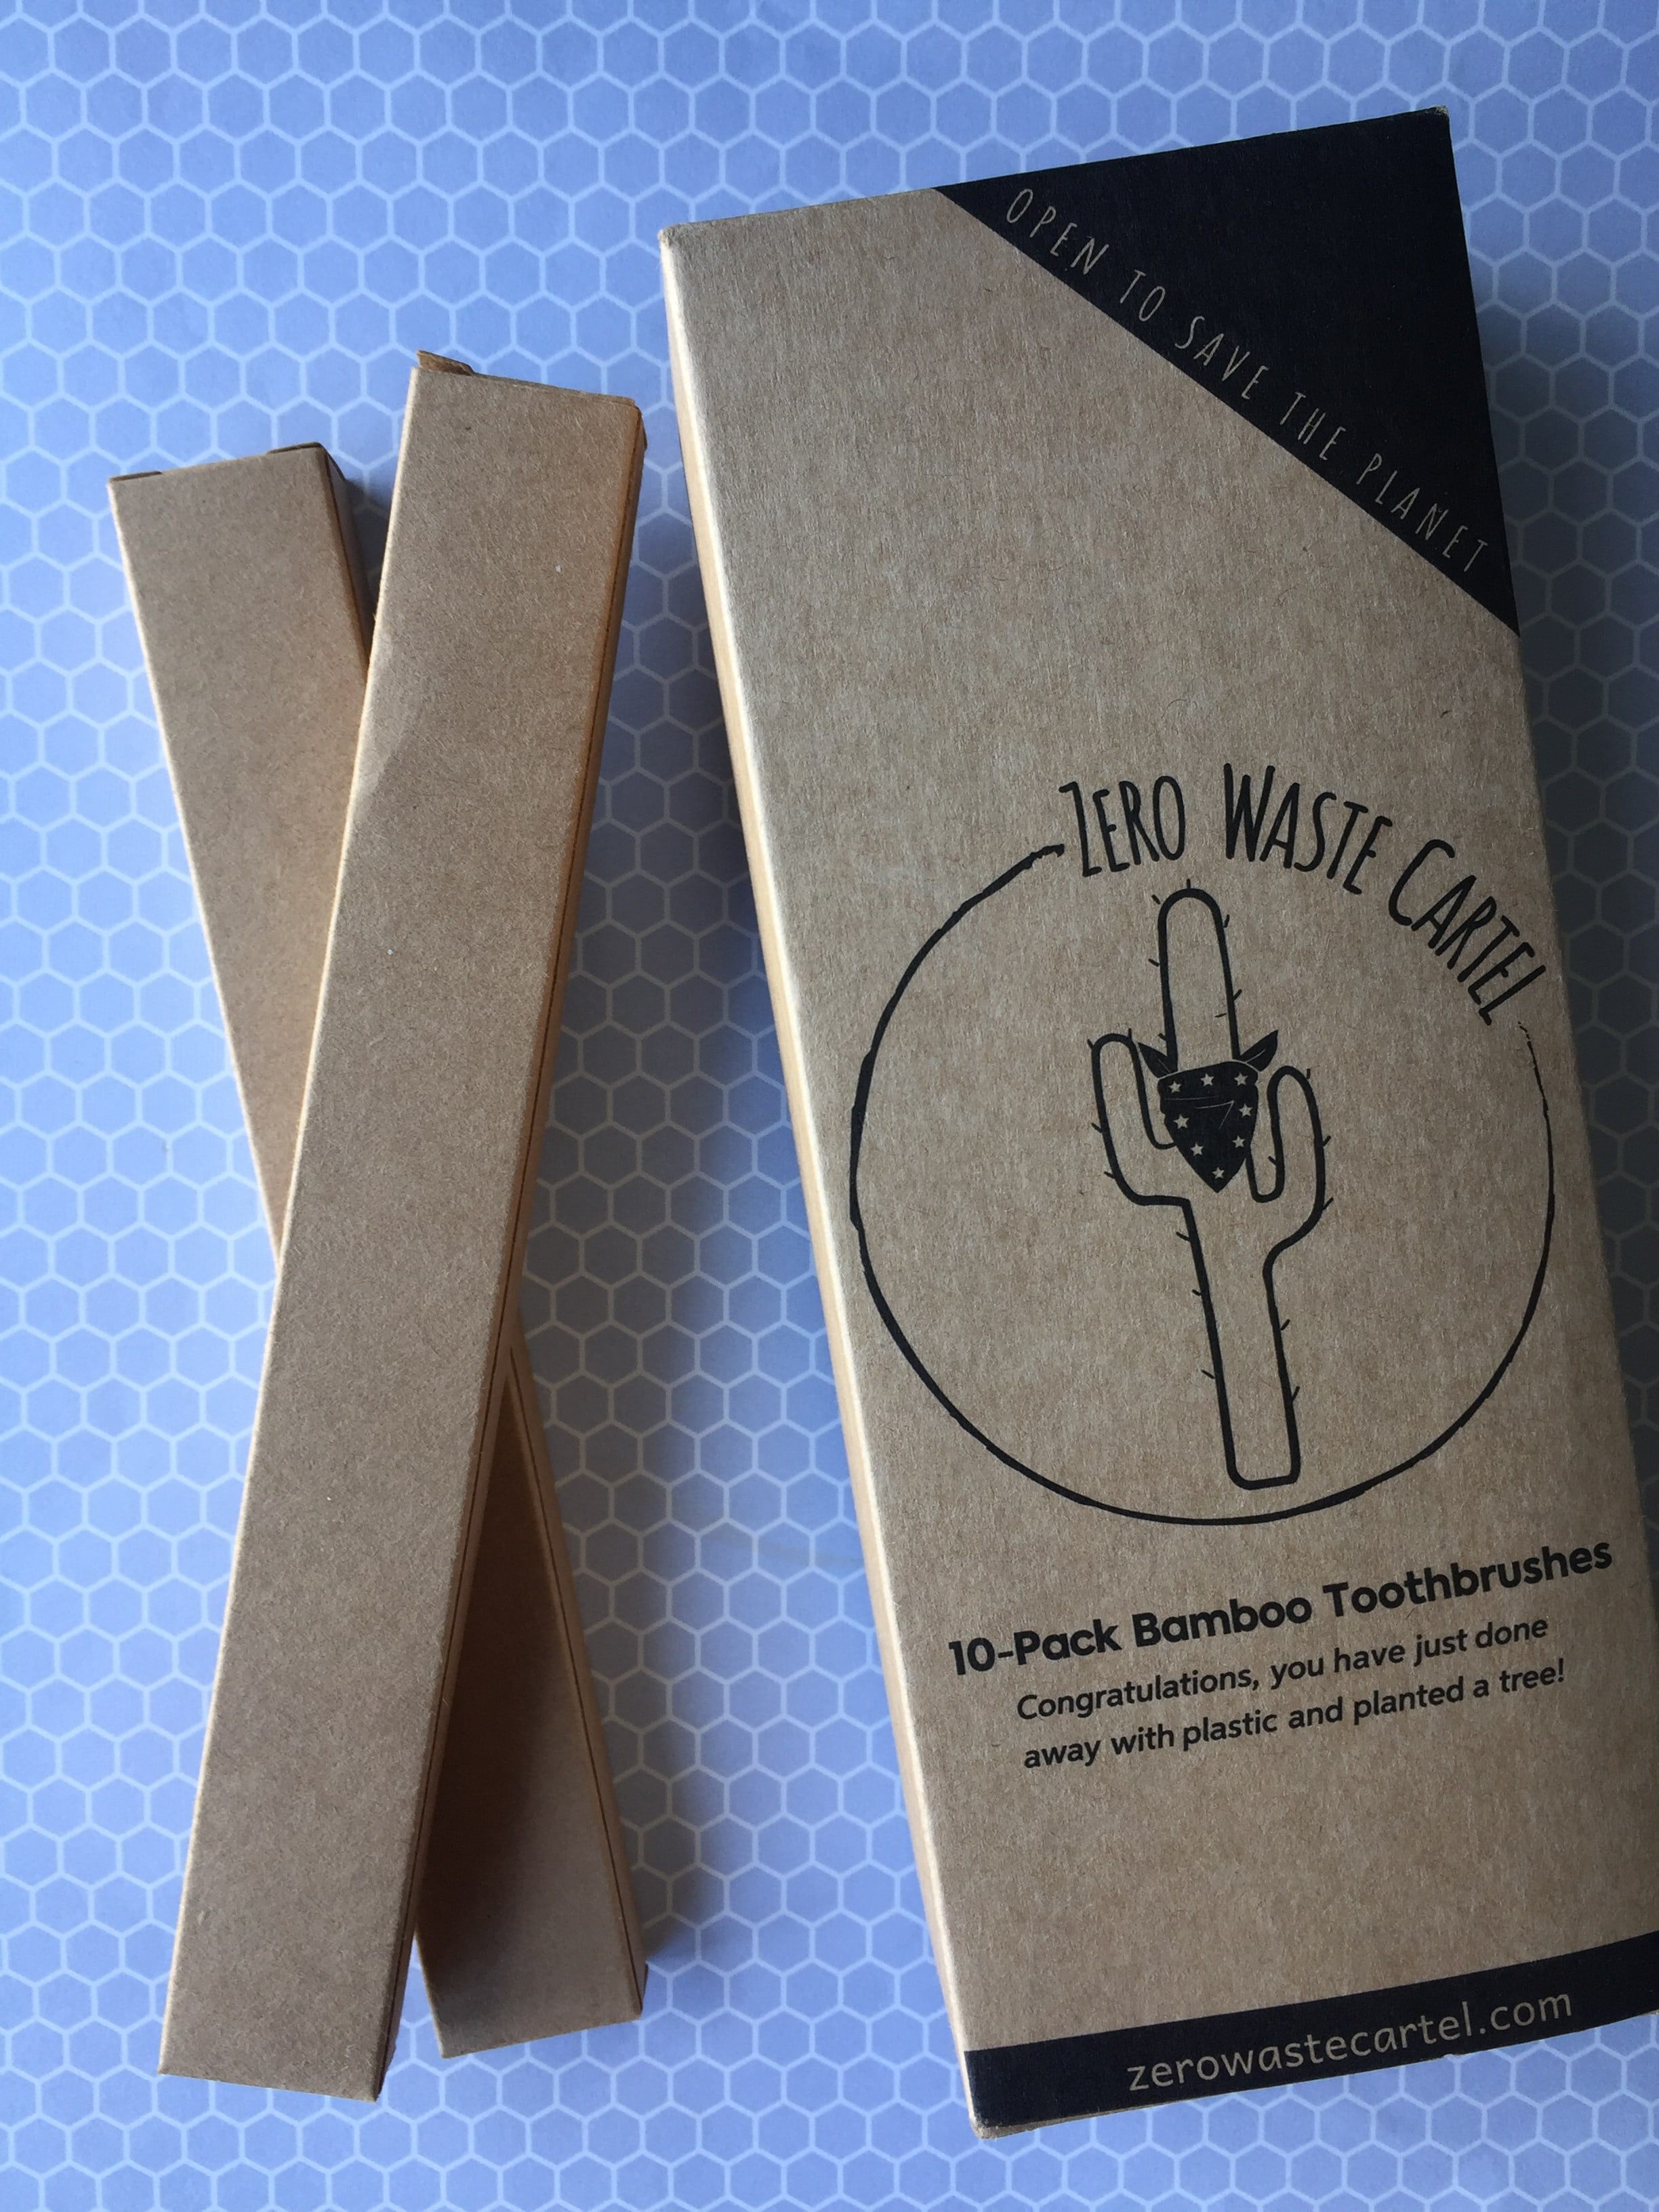 The bamboo toothbrushes from Zero Waste Cartel come in cardboard boxes and much easier to open than the plastic ones.